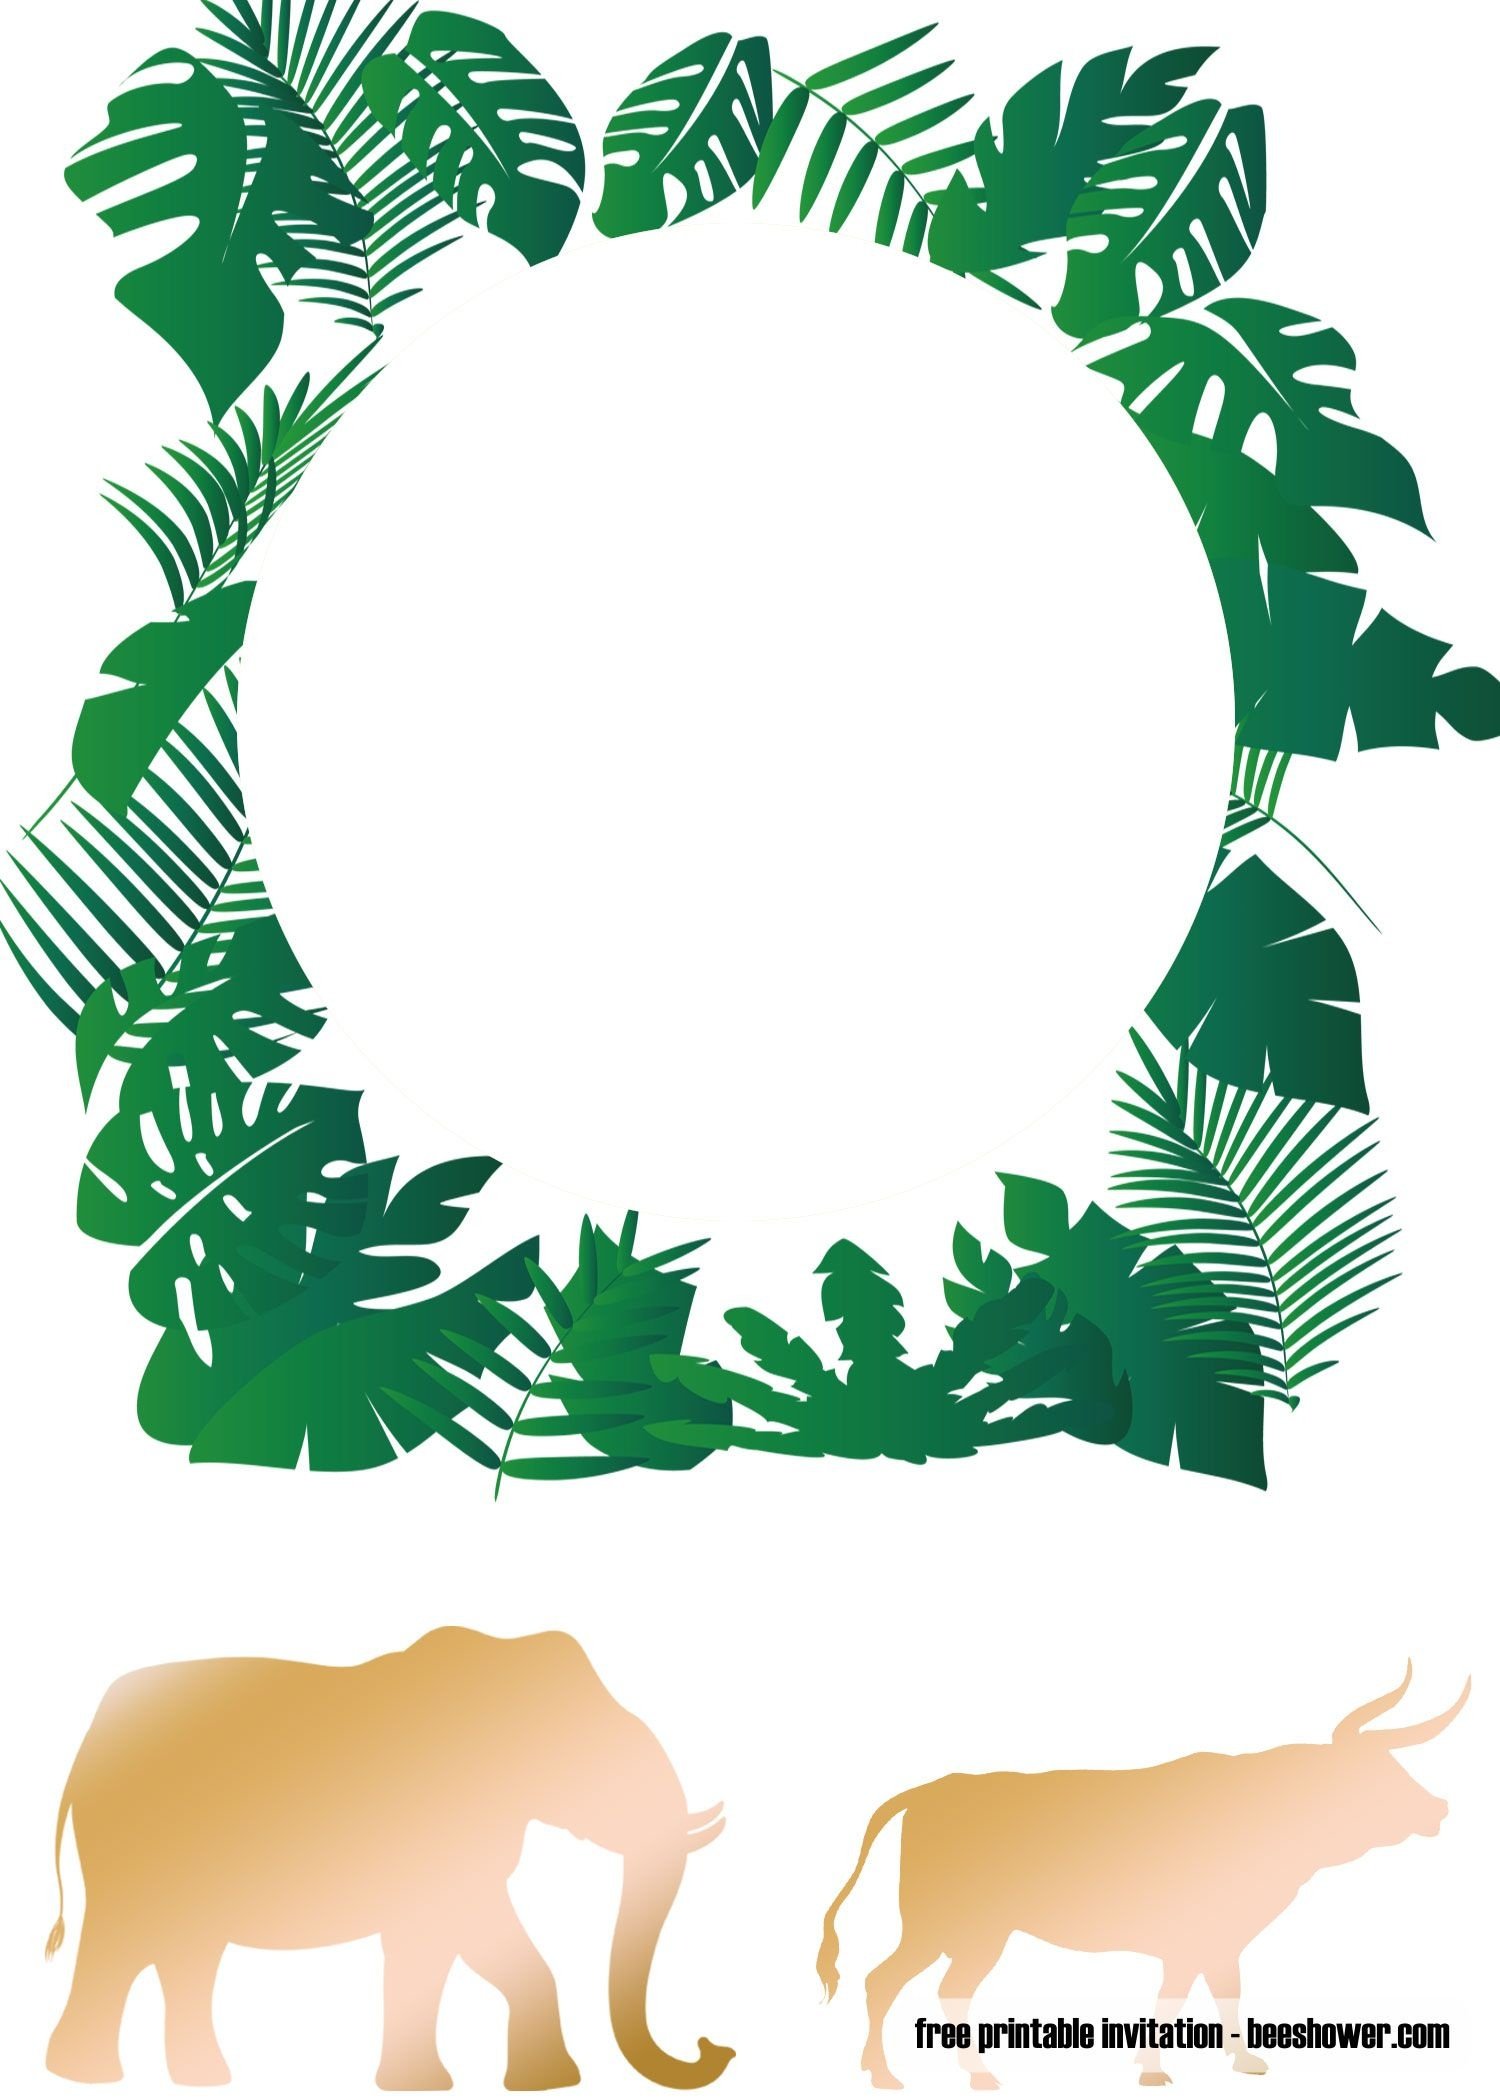 Cool Free Printable Jungle Baby Shower Invitations Templates - Free Printable Camo Baby Shower Invitations